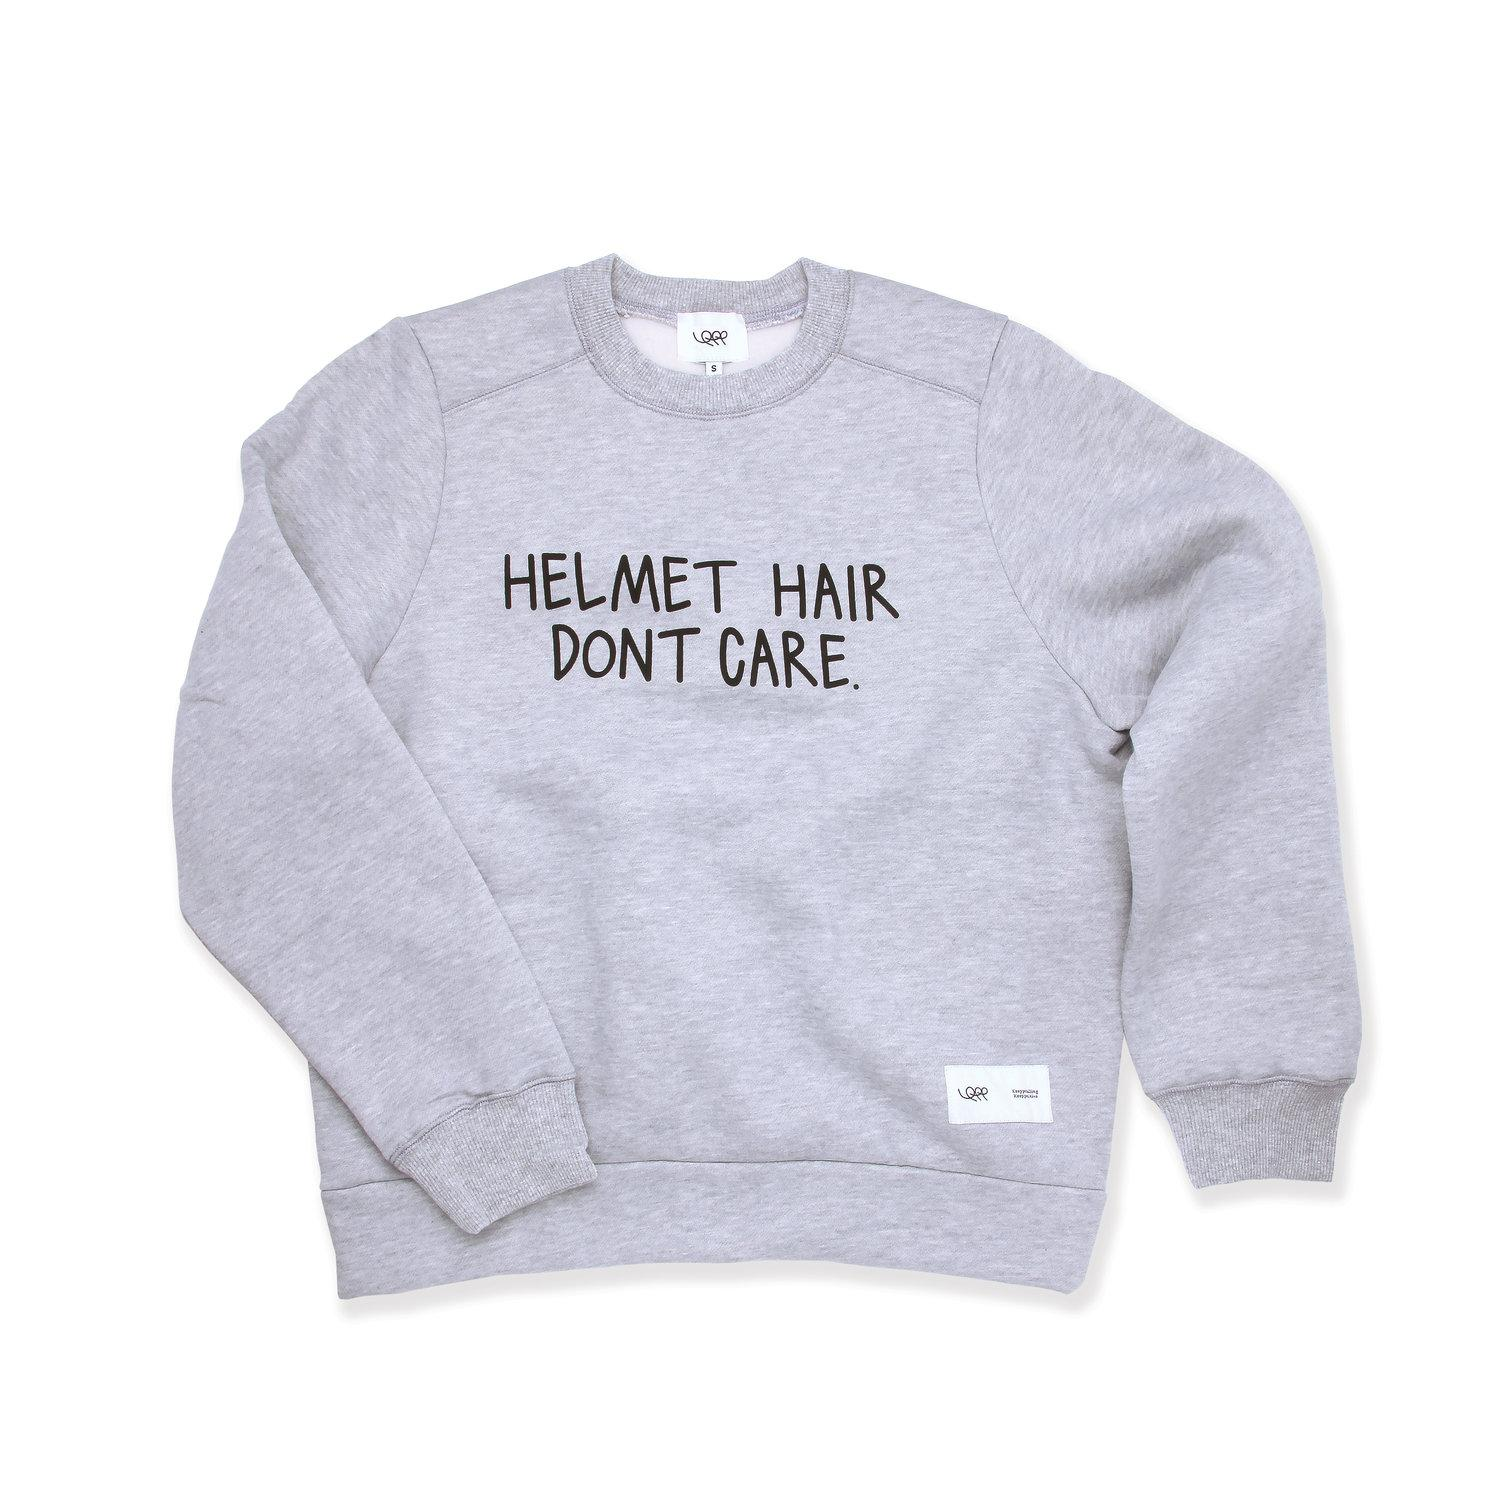 grey jumper with helmet hair don't care written on the front in black writing